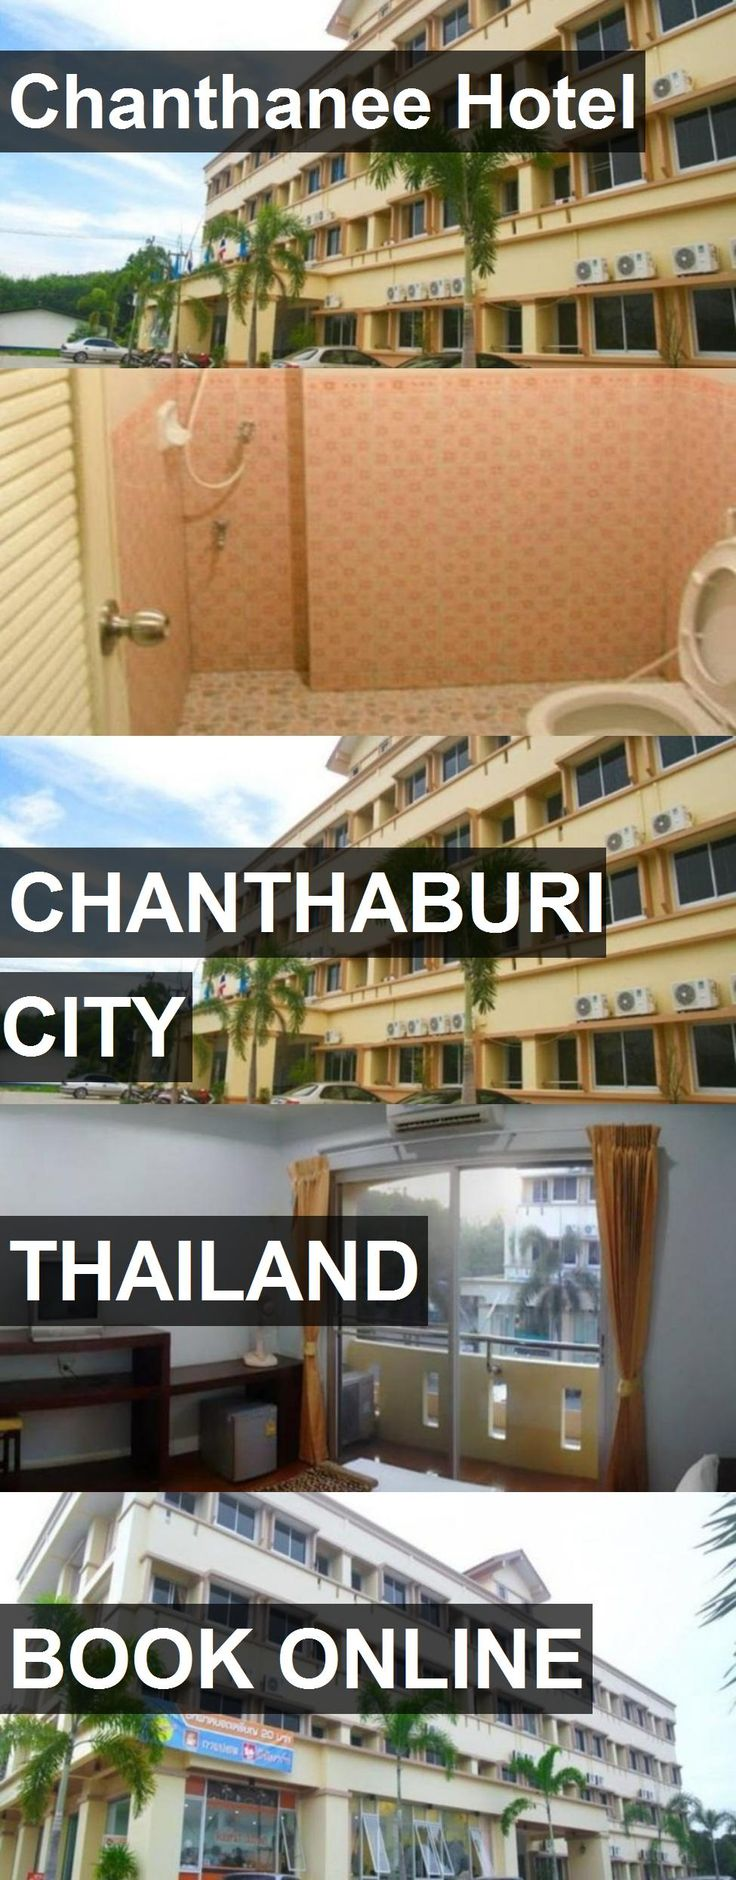 Hotel Chanthanee Hotel in Chanthaburi City, Thailand. For more information, photos, reviews and best prices please follow the link. #Thailand #ChanthaburiCity #hotel #travel #vacation